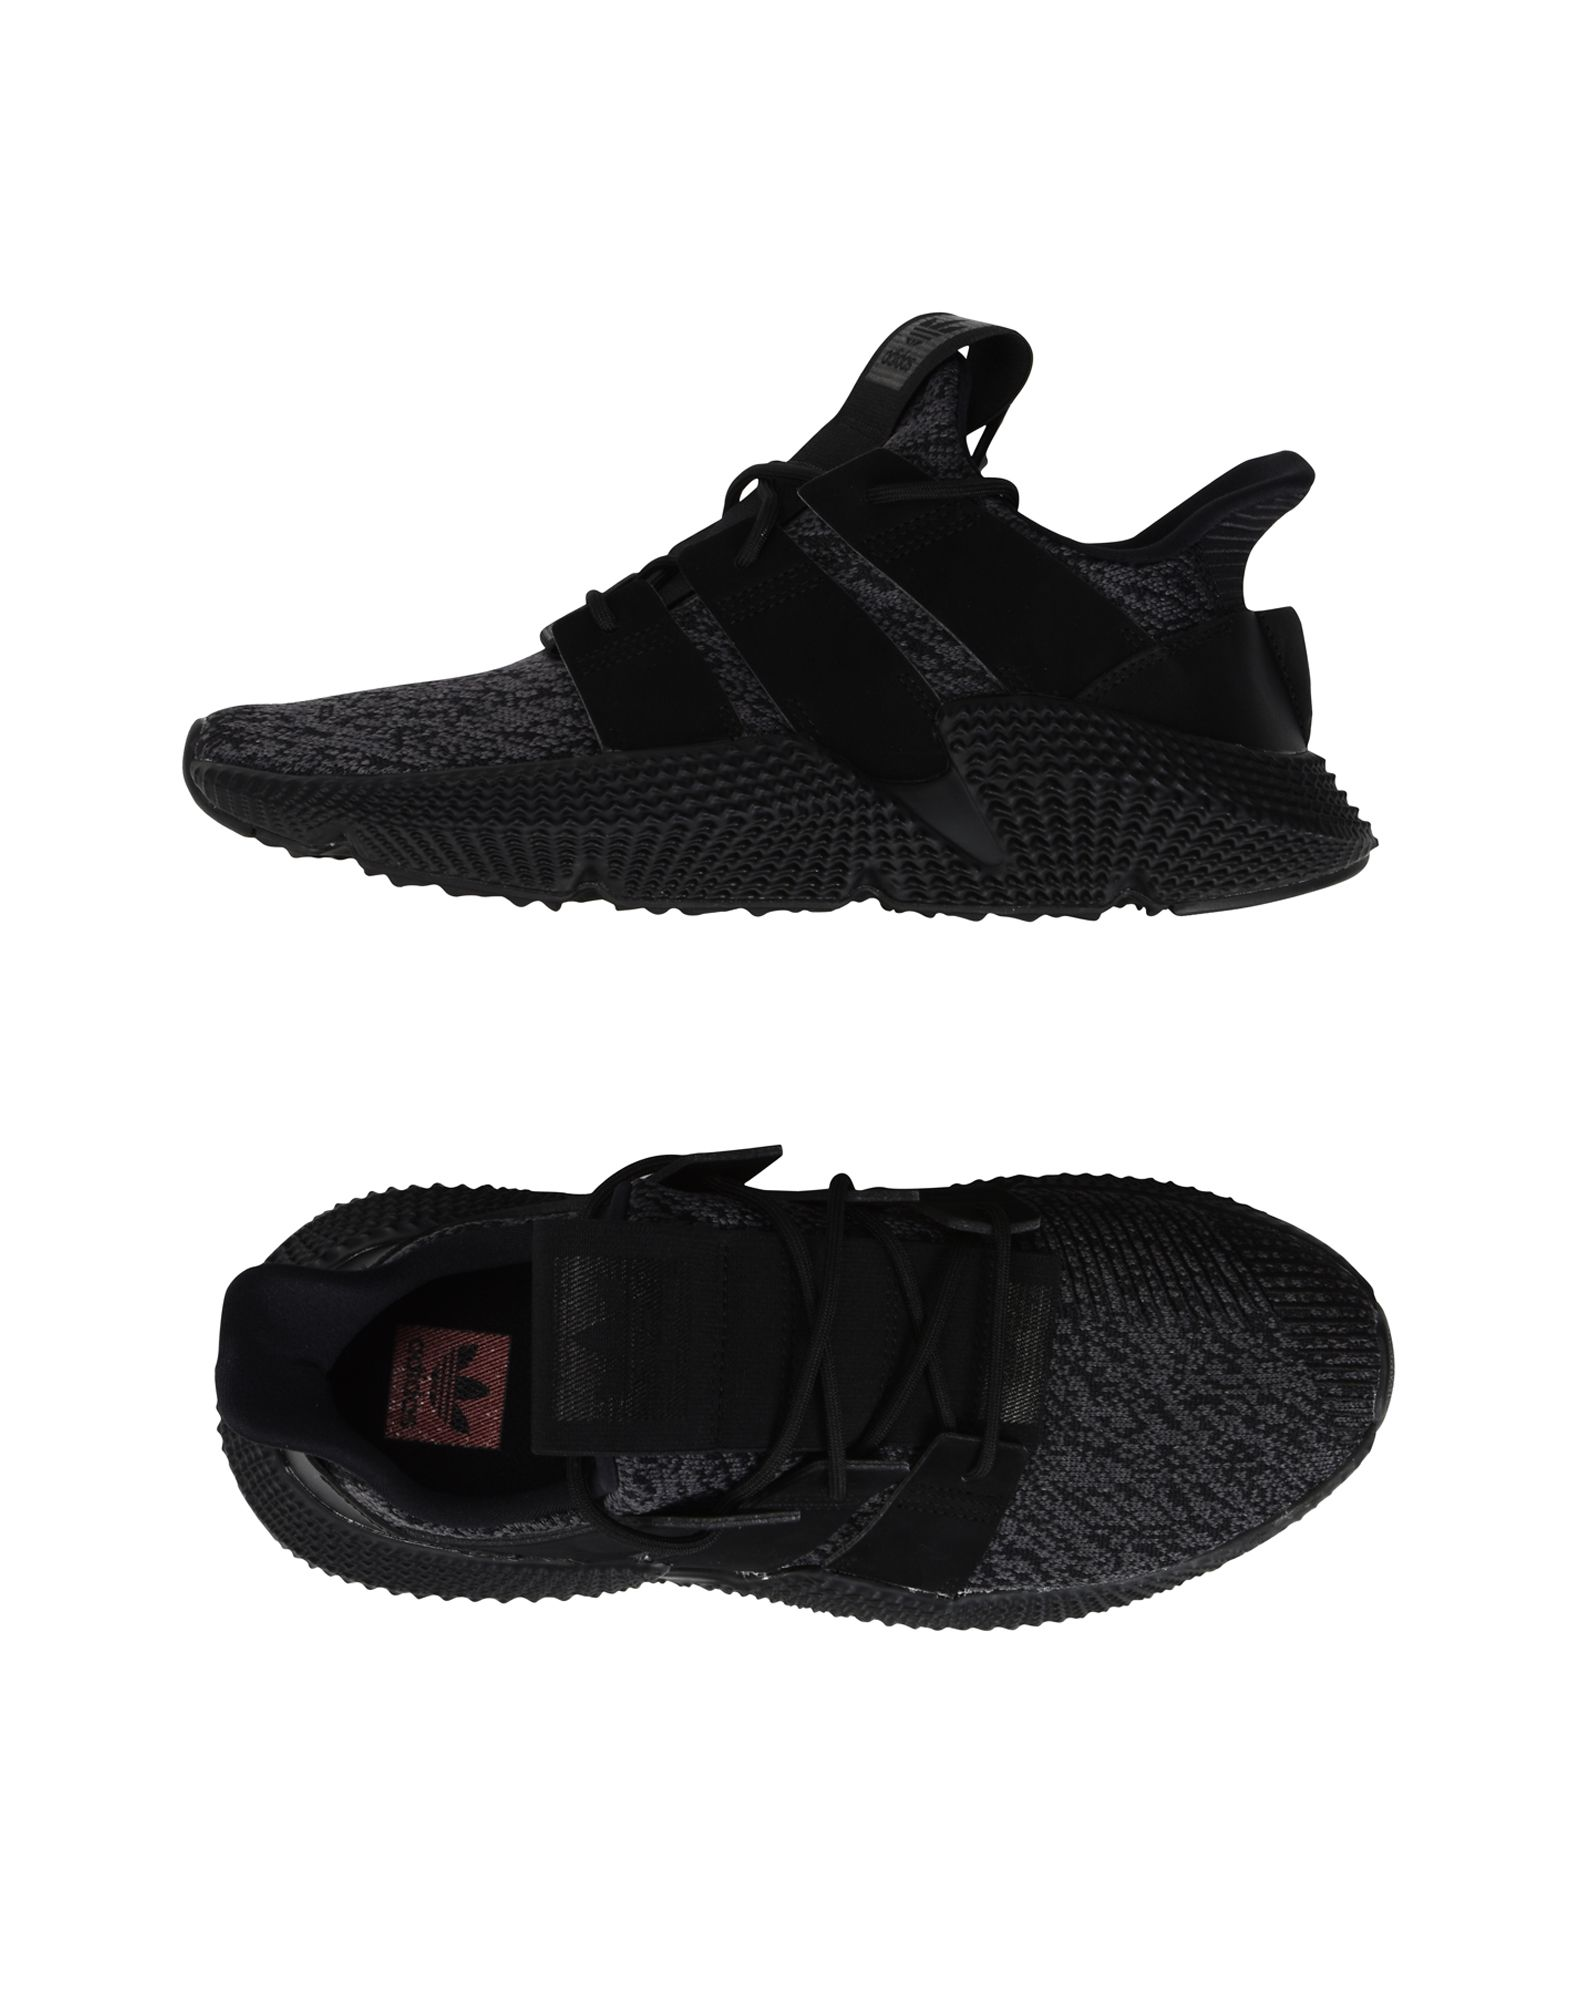 Baskets Adidas Originals Prophere - Femme - Baskets Adidas Originals Plomb Mode pas cher et belle